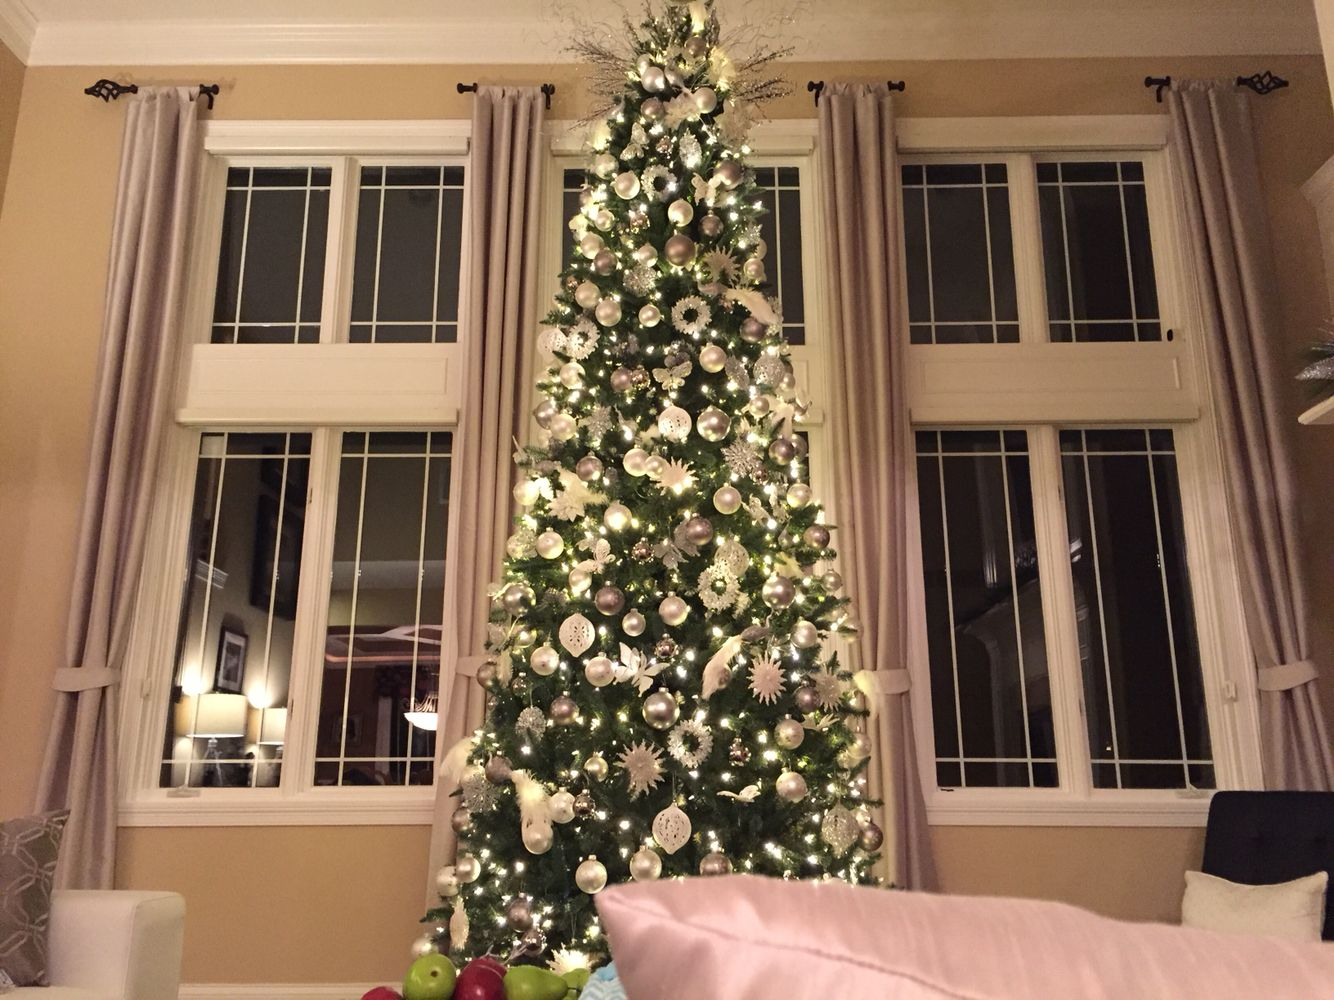 Meticulously Decorated 12 Foot Tree With A Contemporary White And Silver Theme Christmas Contemporary Christmas Trees 12 Foot Christmas Tree Christmas Deco